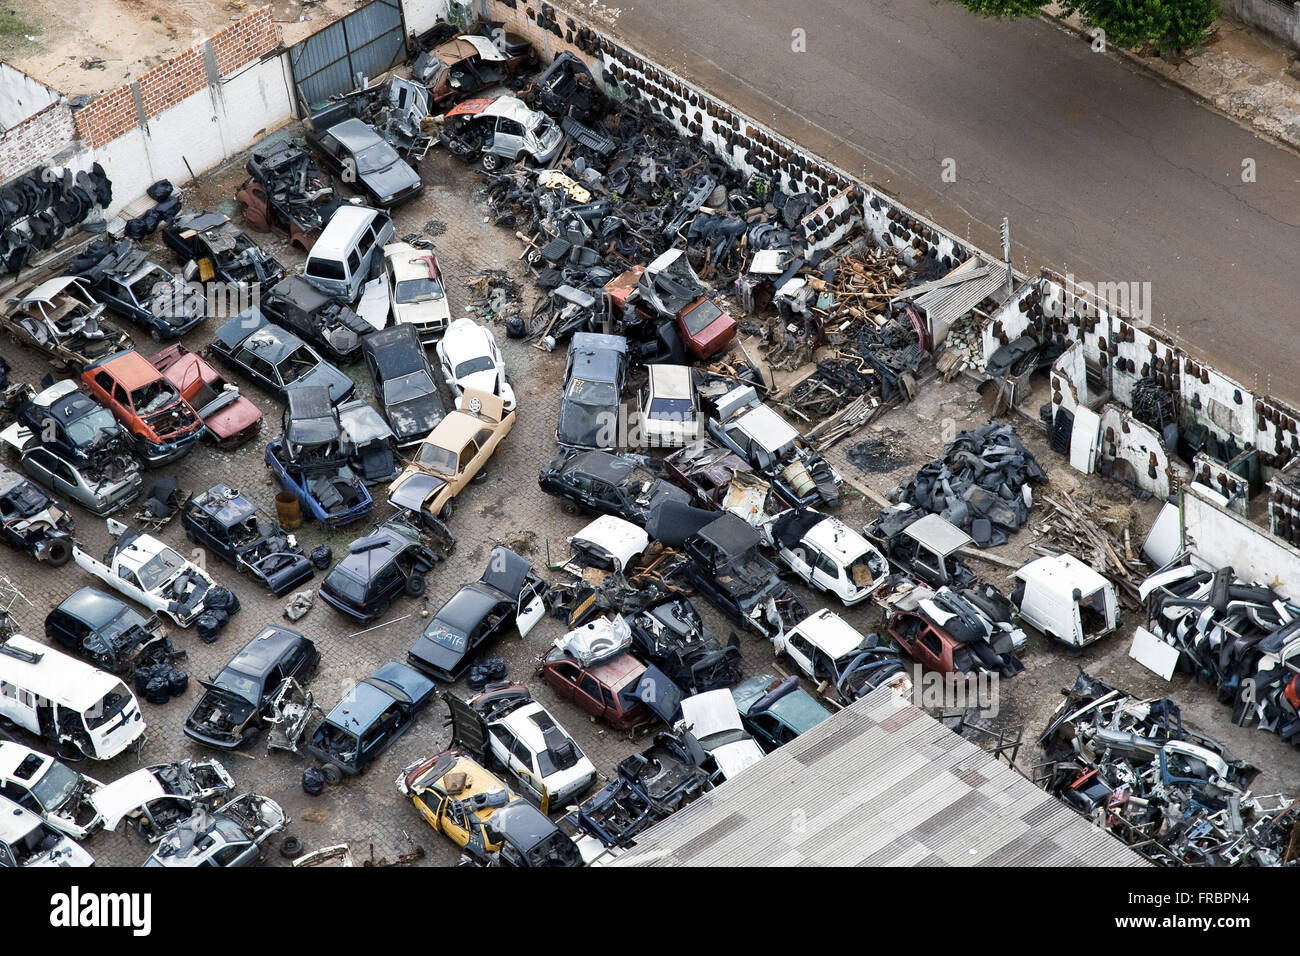 Junkyard in the central region of the city - Stock Image